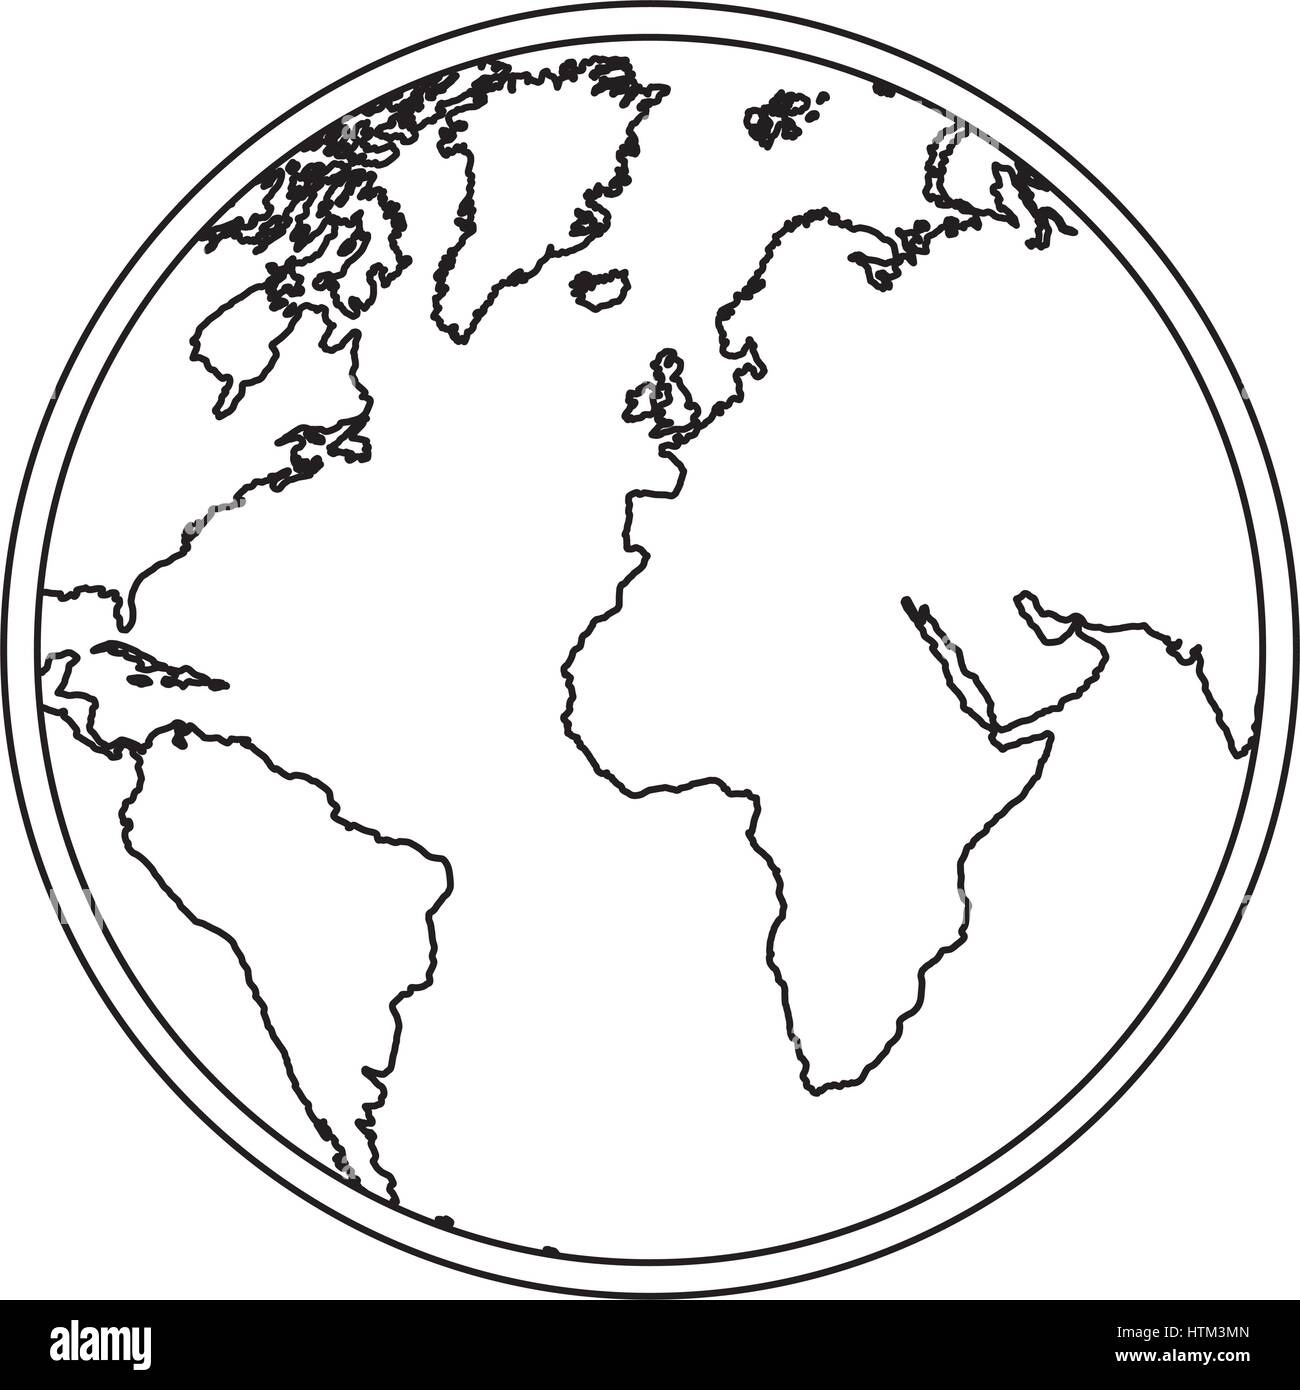 Silhouette earth world map with continents icon stock vector art silhouette earth world map with continents icon gumiabroncs Images